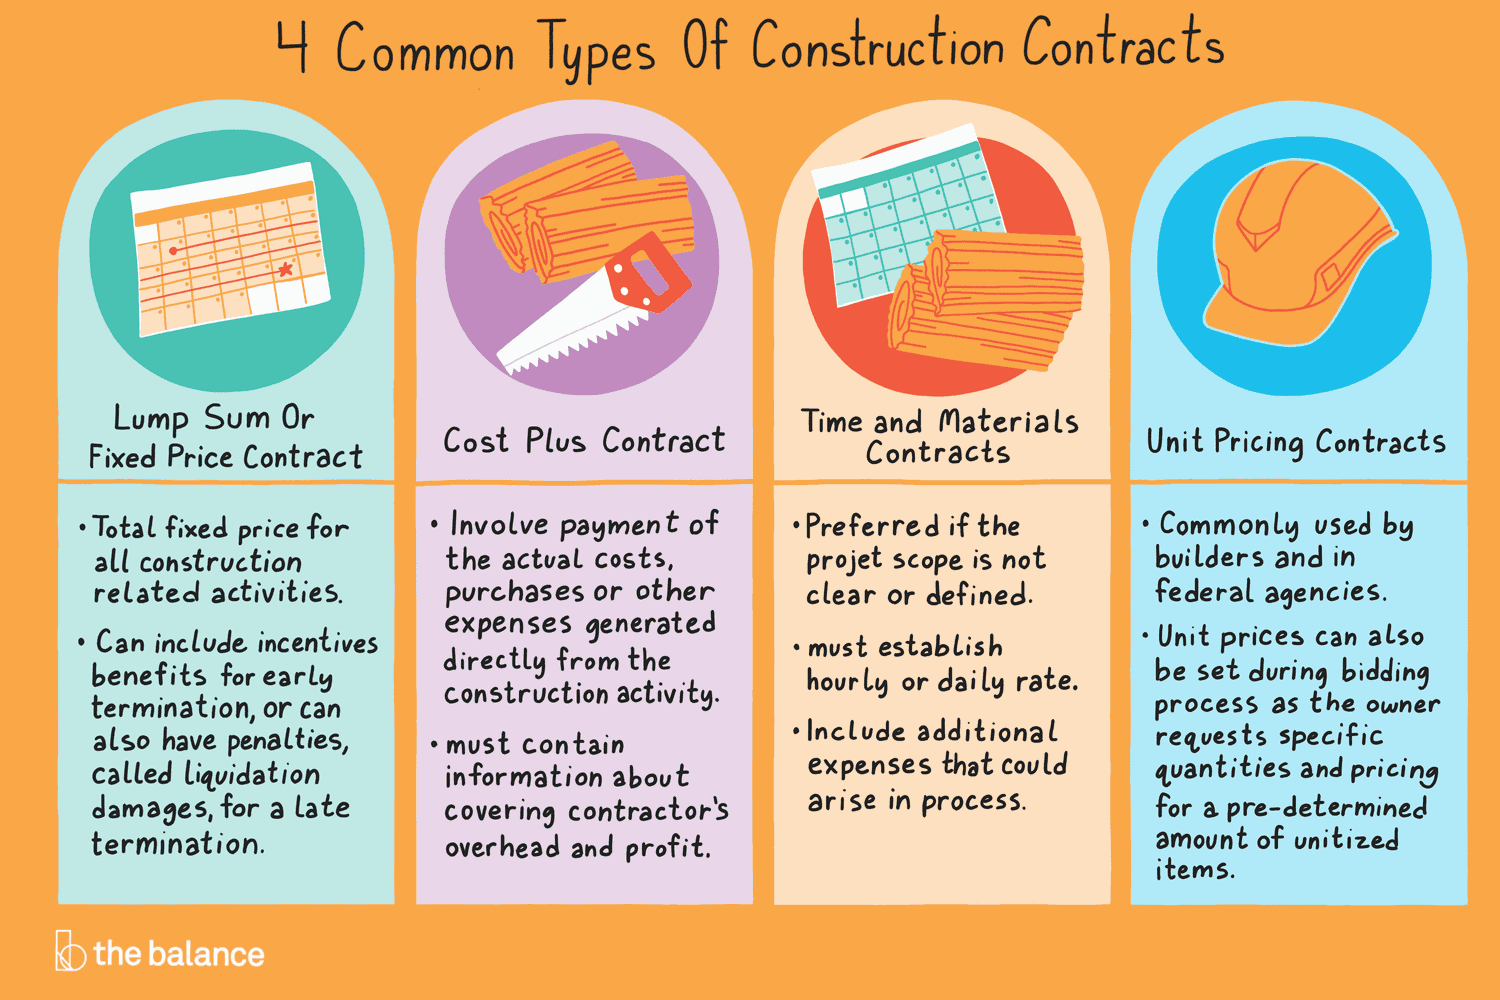 Preposition In Learn In Marathi All Complate: 4 Common Types Of Construction Contracts